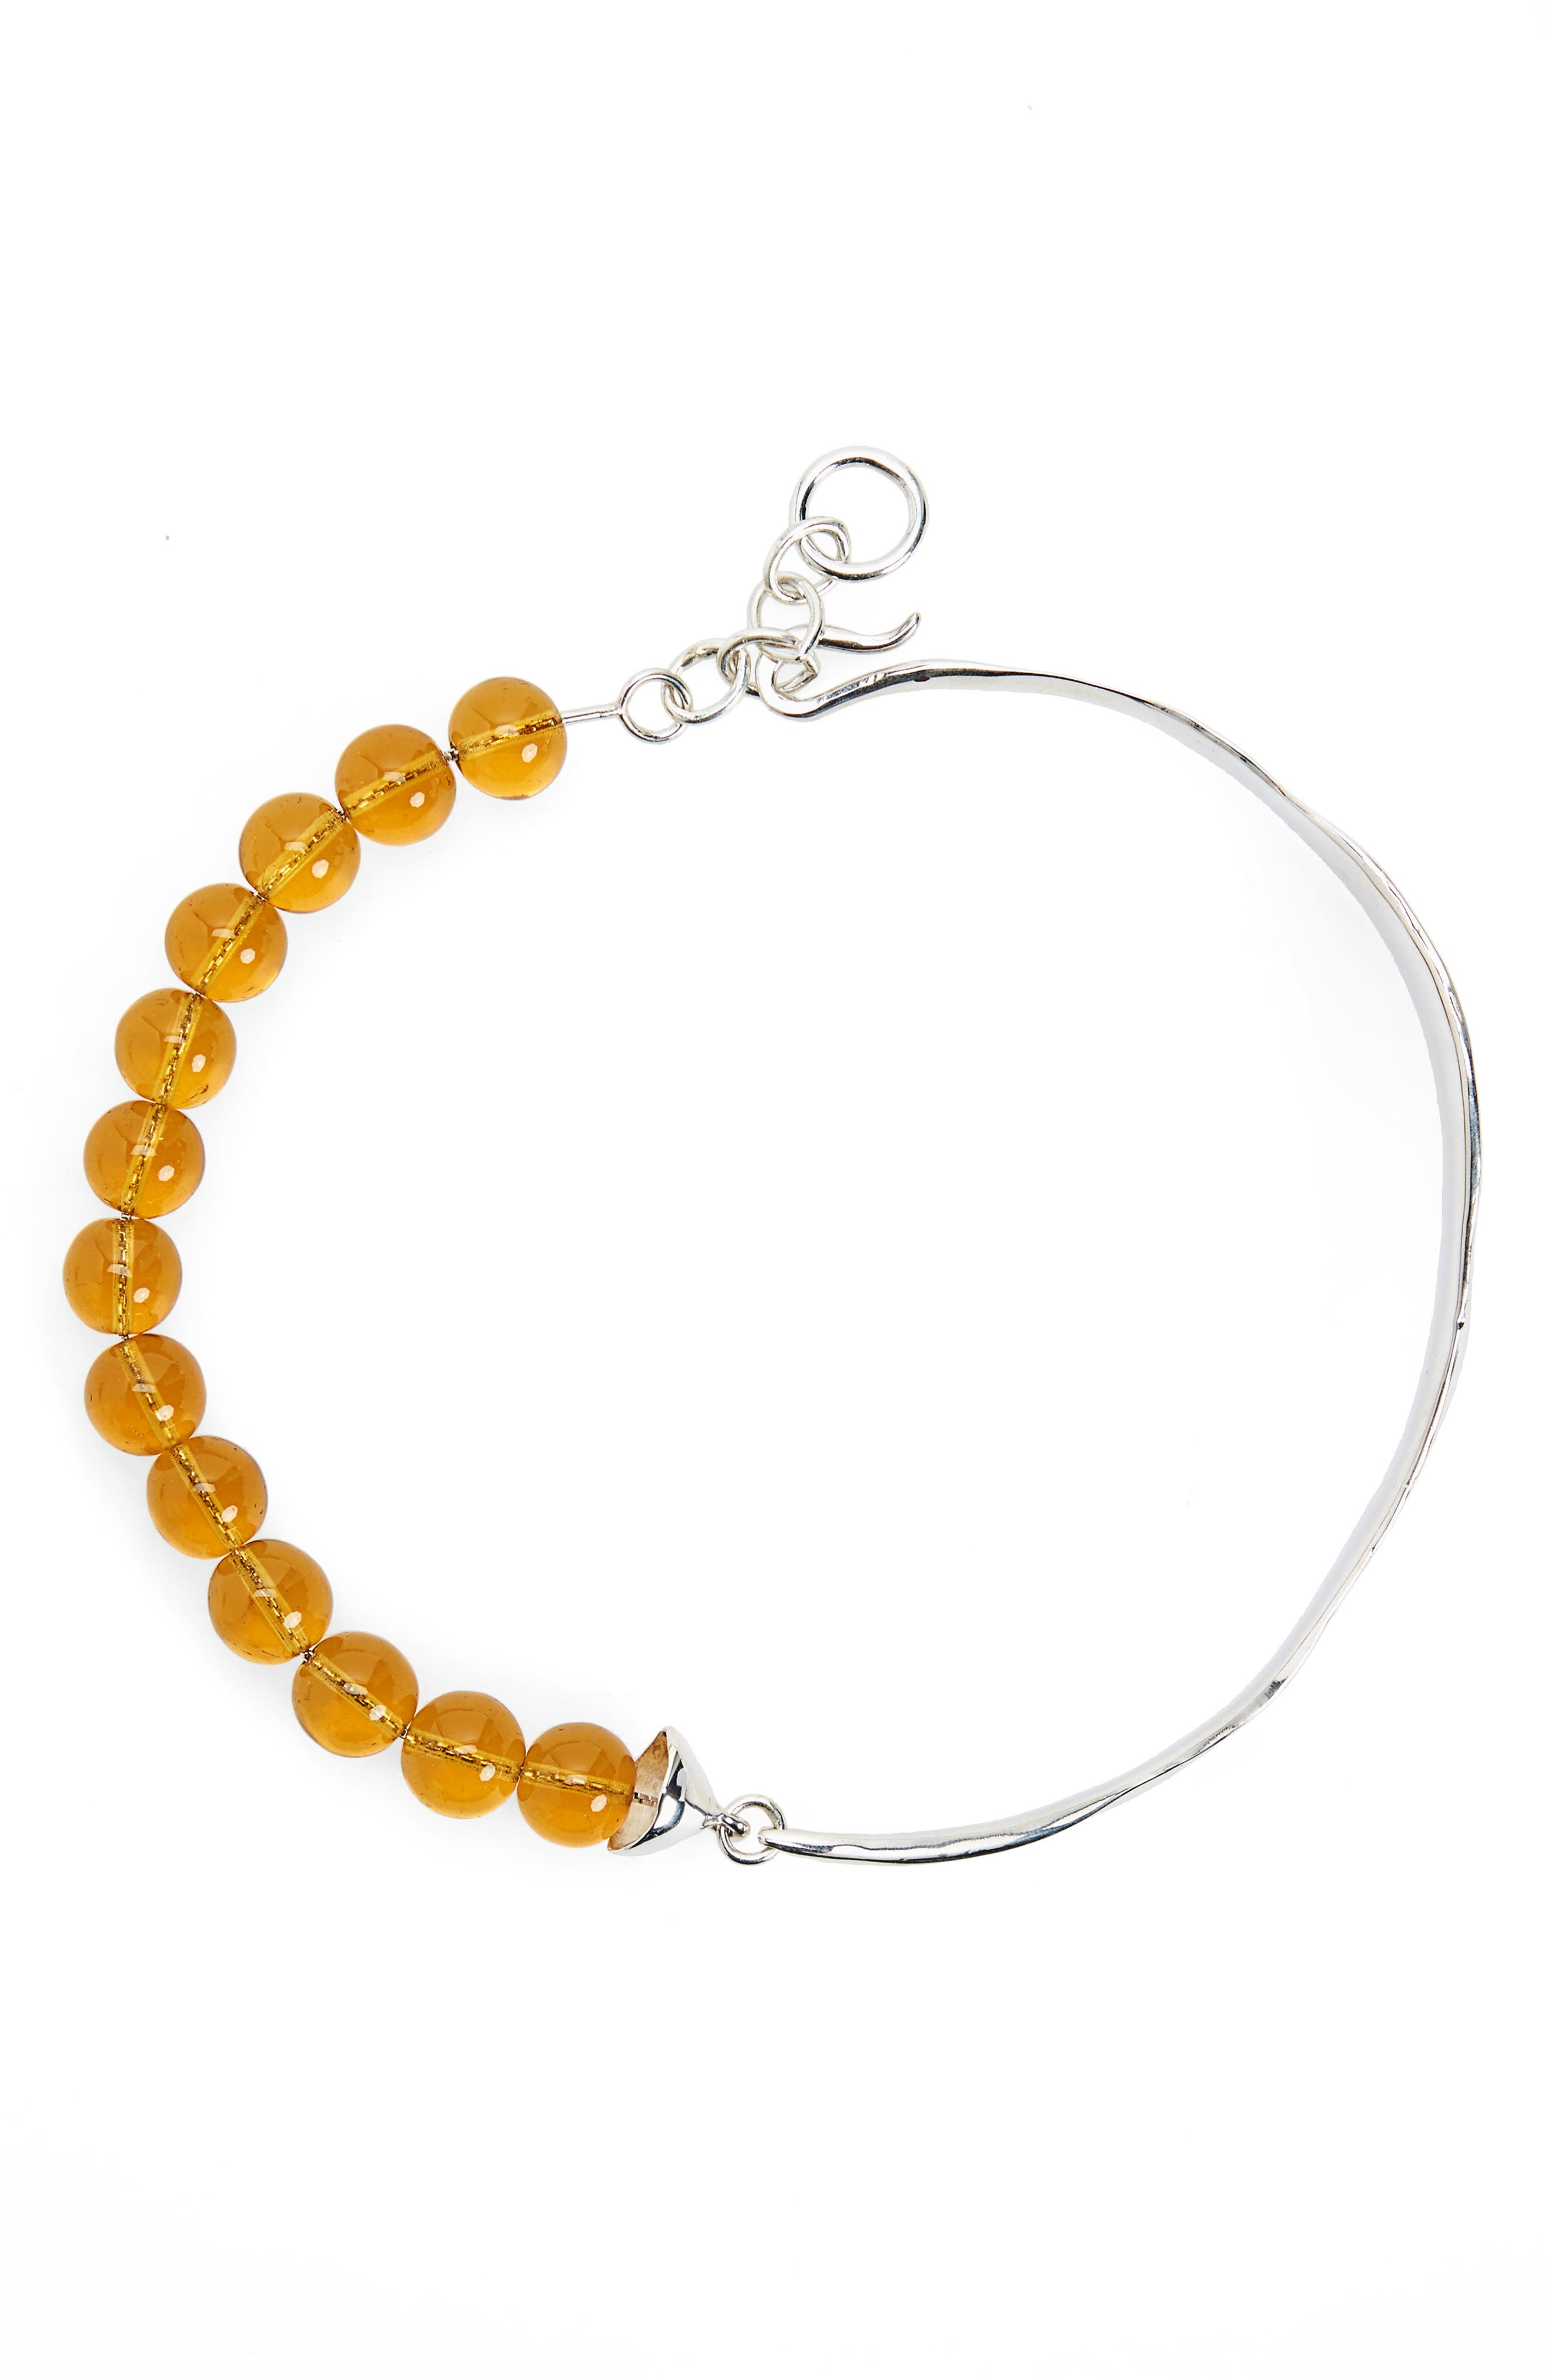 Versus Verre Collar Necklace,                         Main,                         color, Sterling Silver/ Yellow Glass